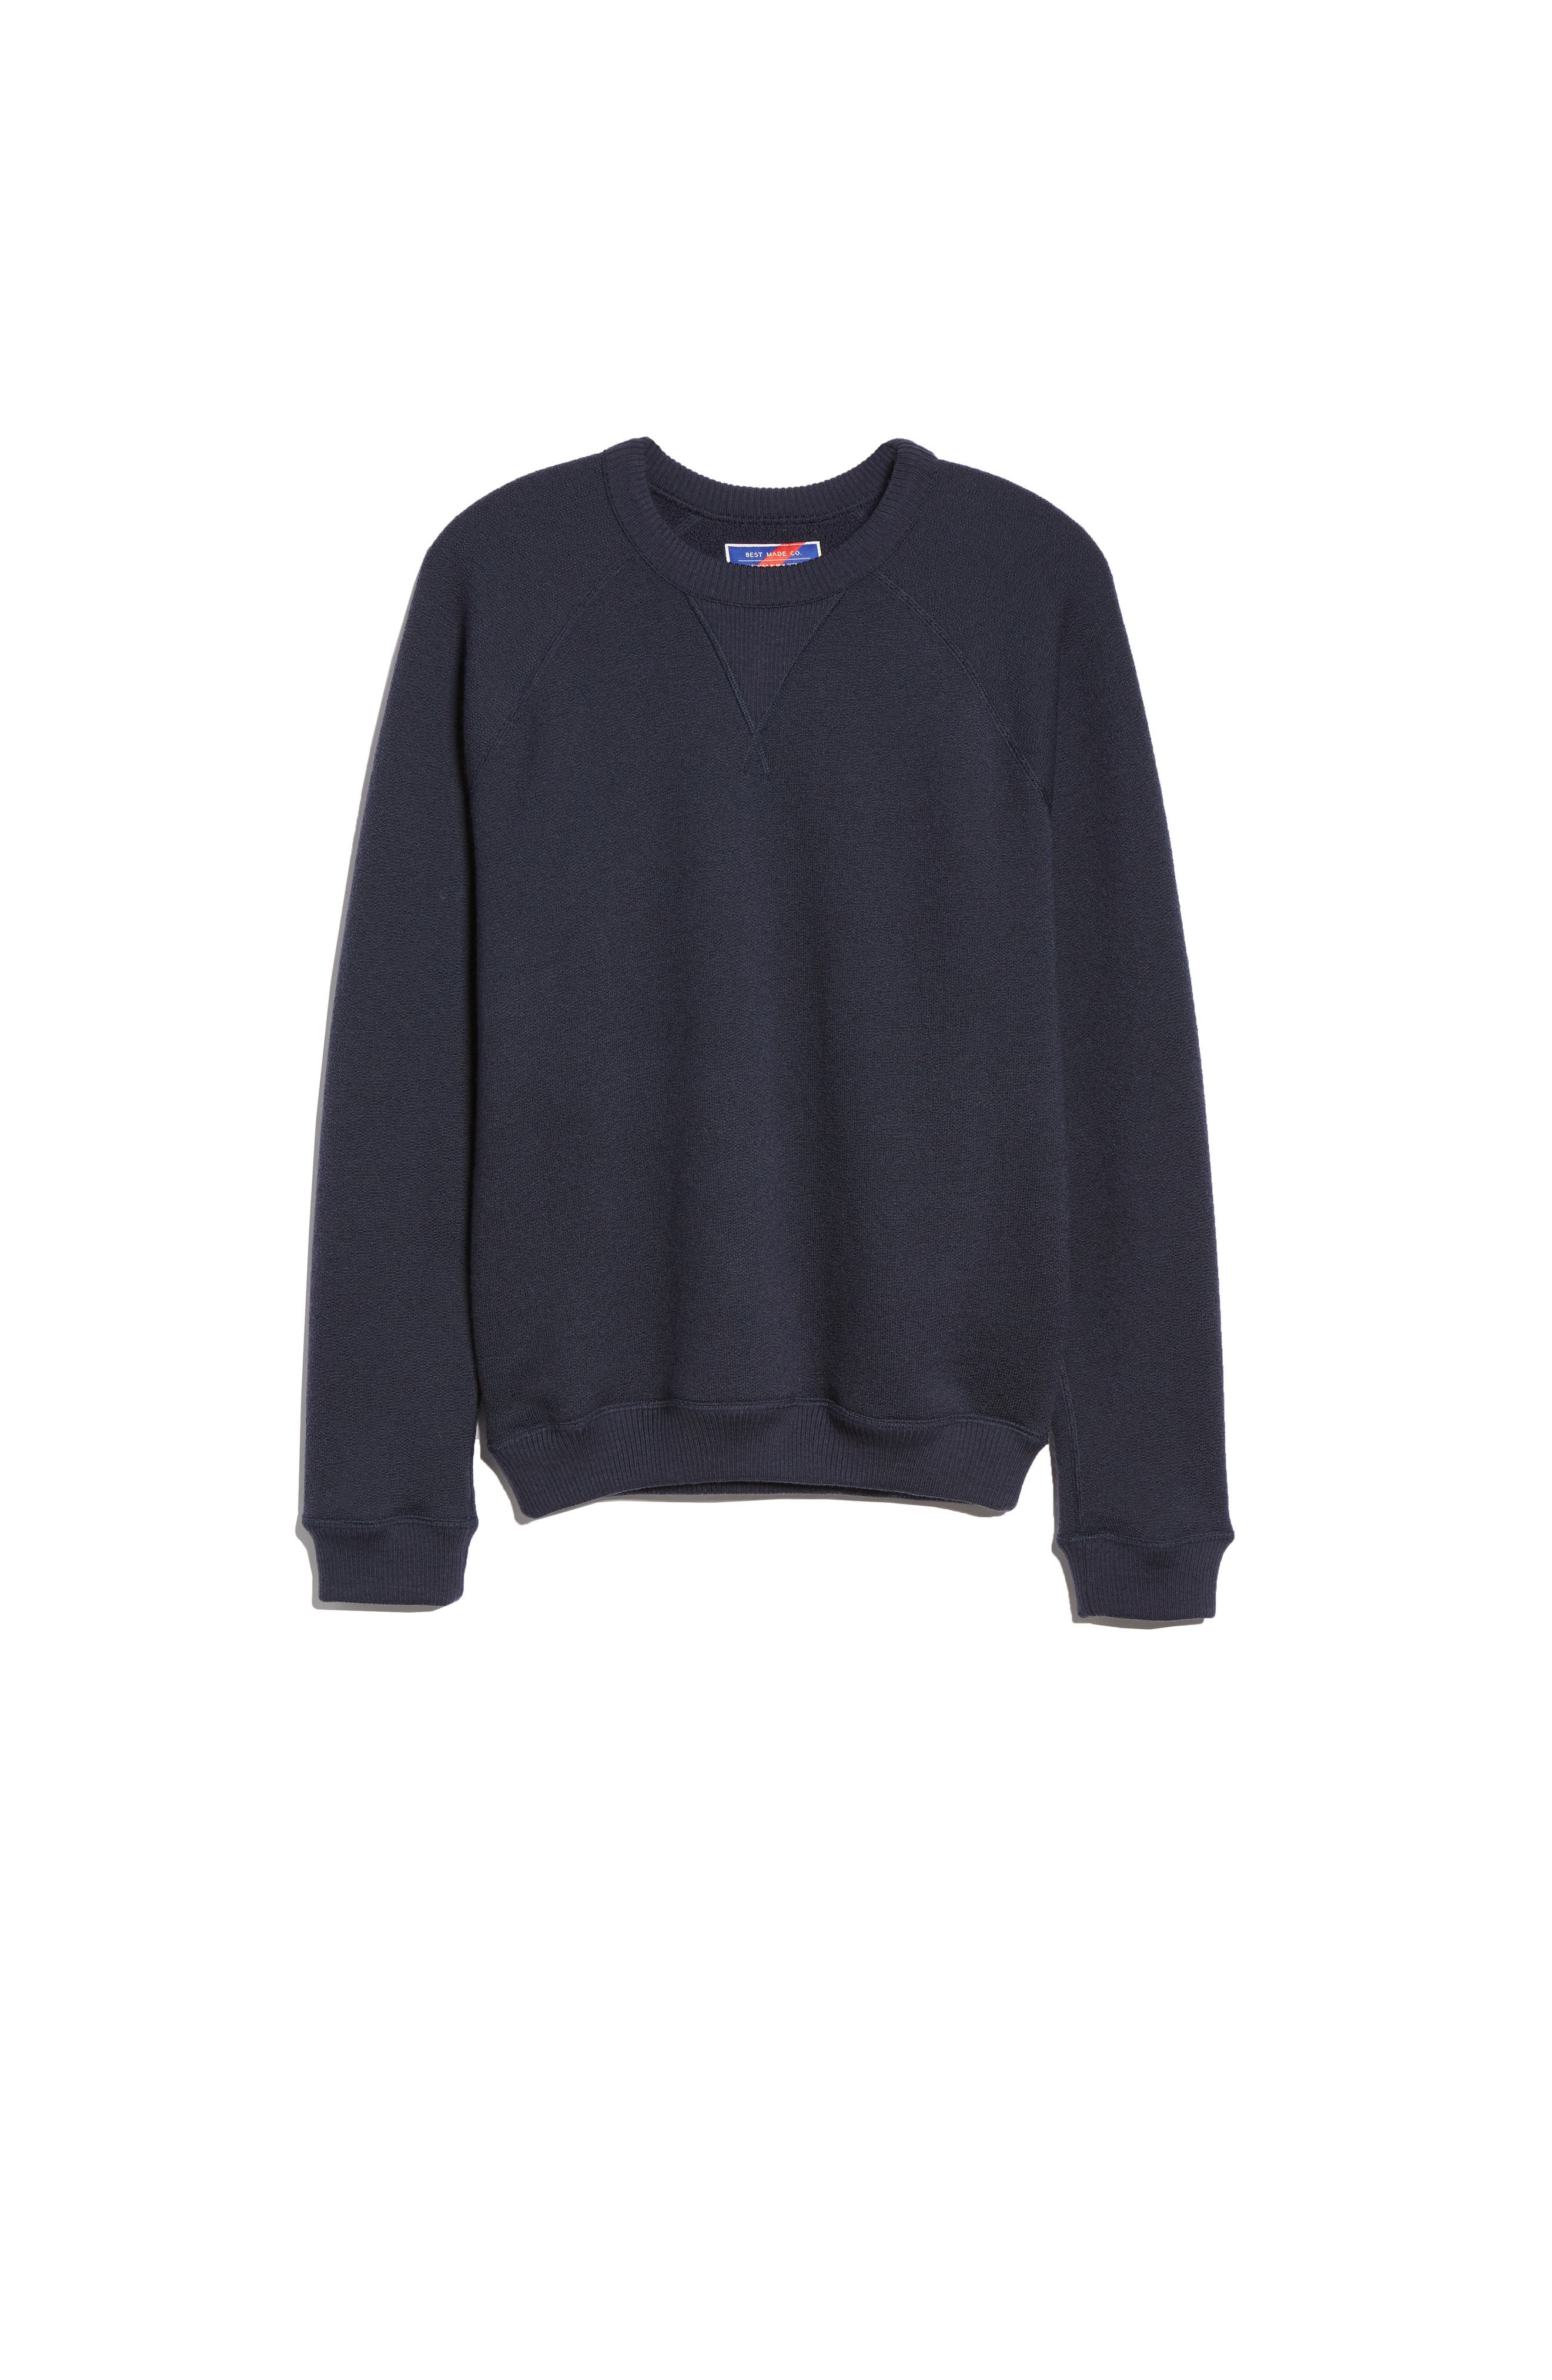 BEST MADE CO., The Merino Wool Fleece Crew Sweatshirt, Main thumbnail 1, color, 410